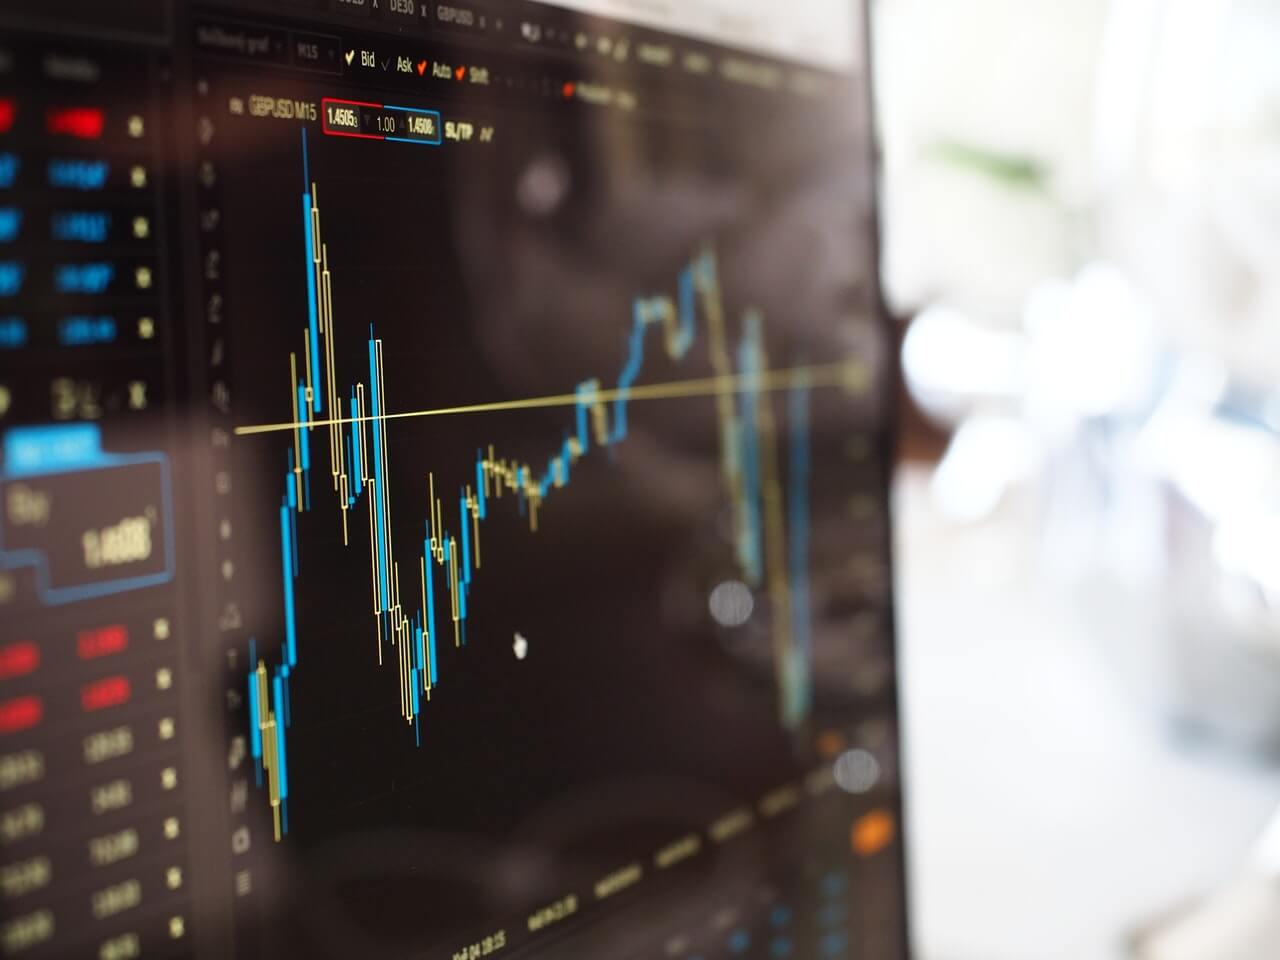 blue-and-yellow-graph-on-stock-market-monitor